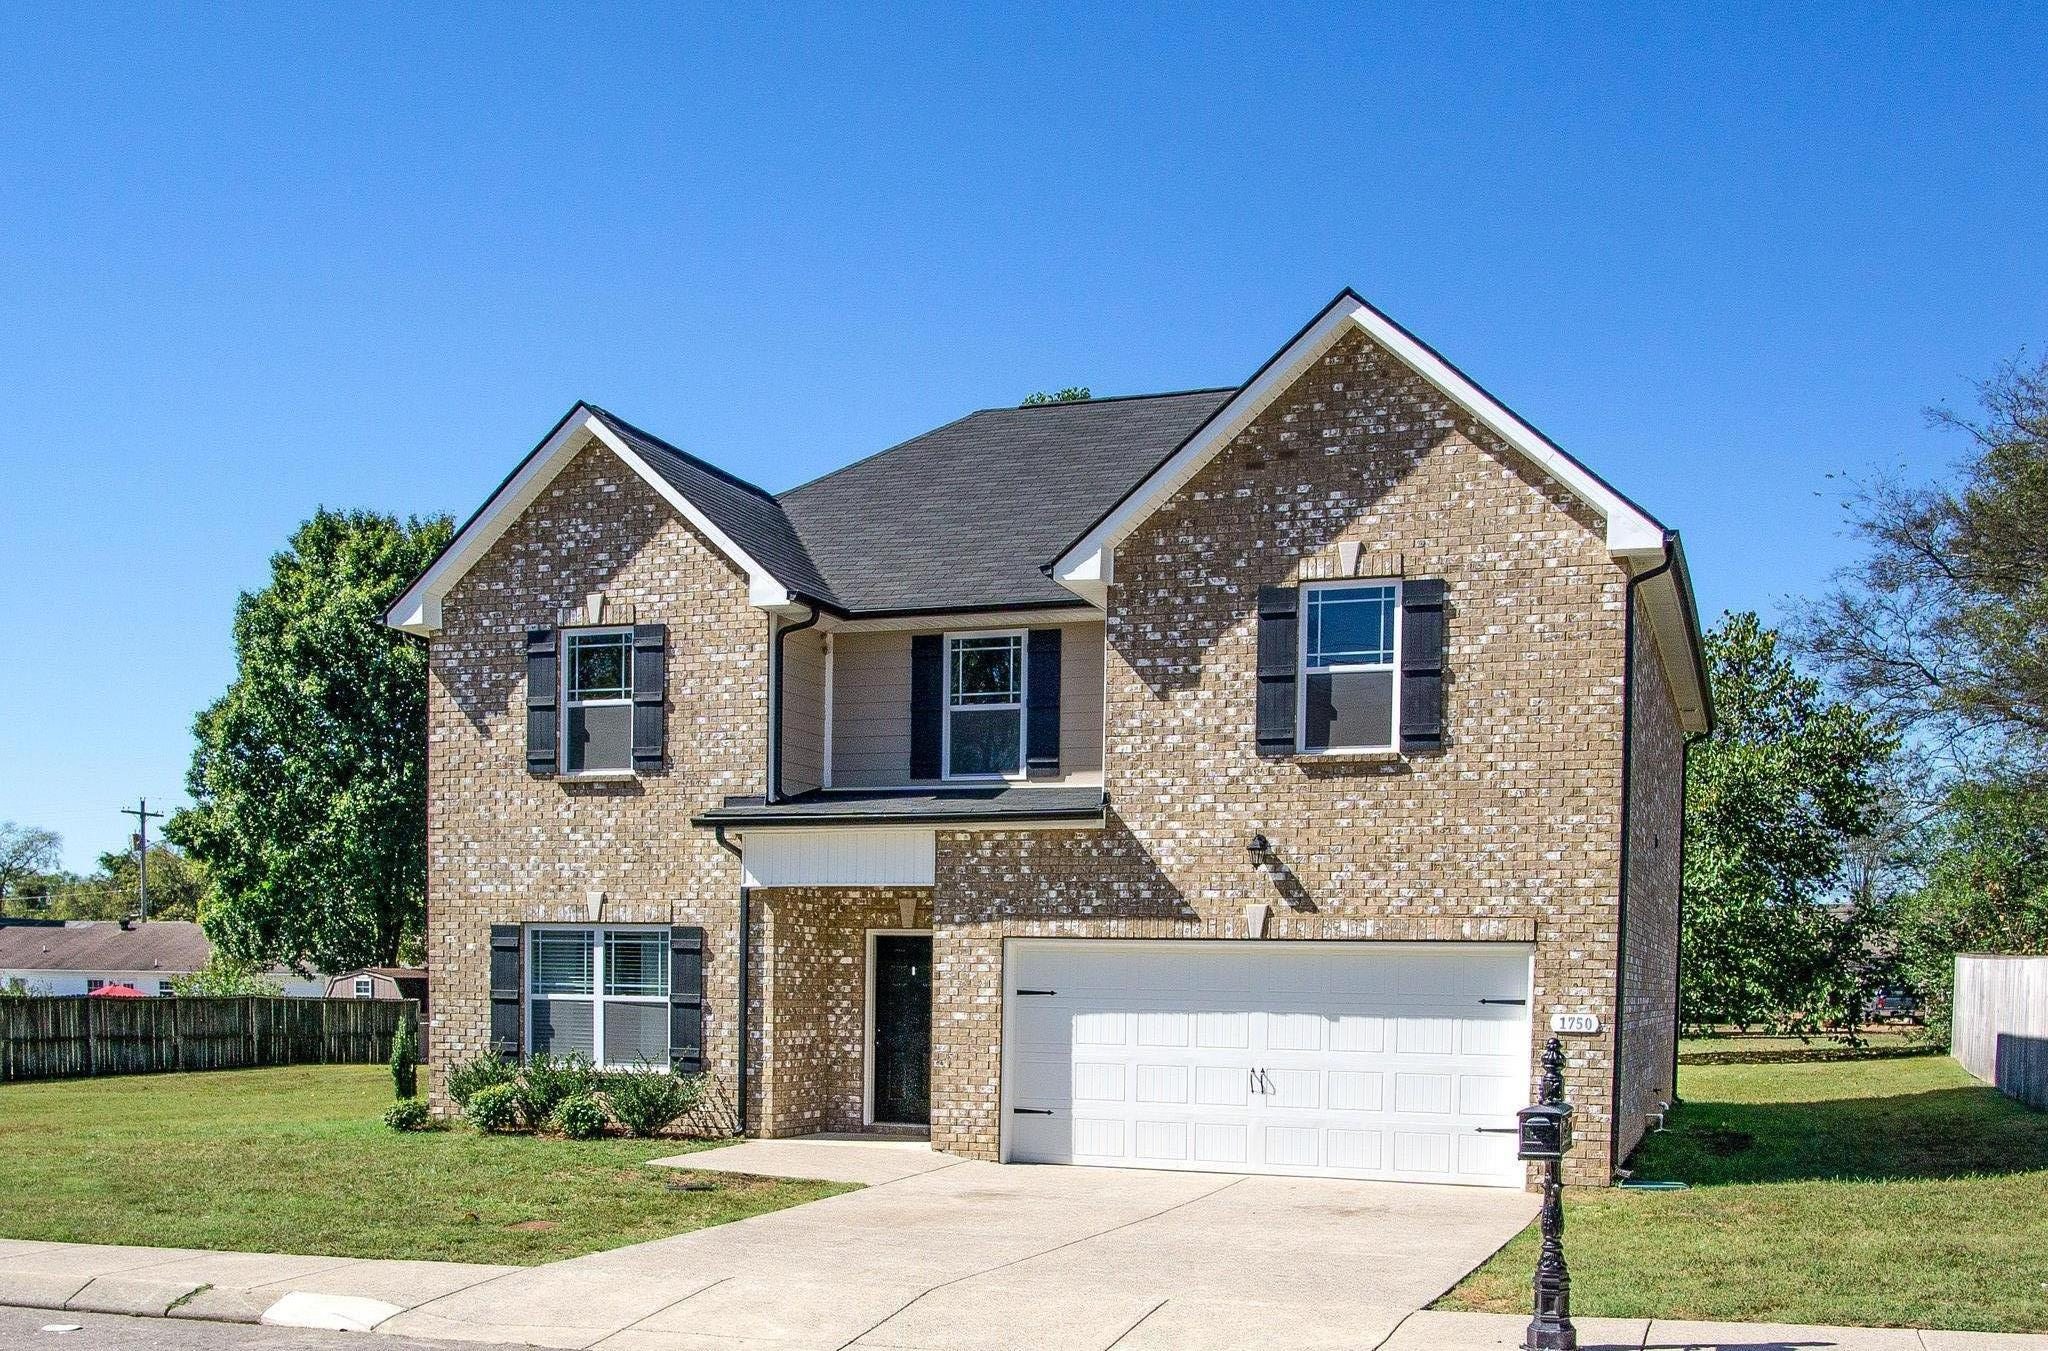 1750 Auburn Ln 38401 - One of Columbia Homes for Sale